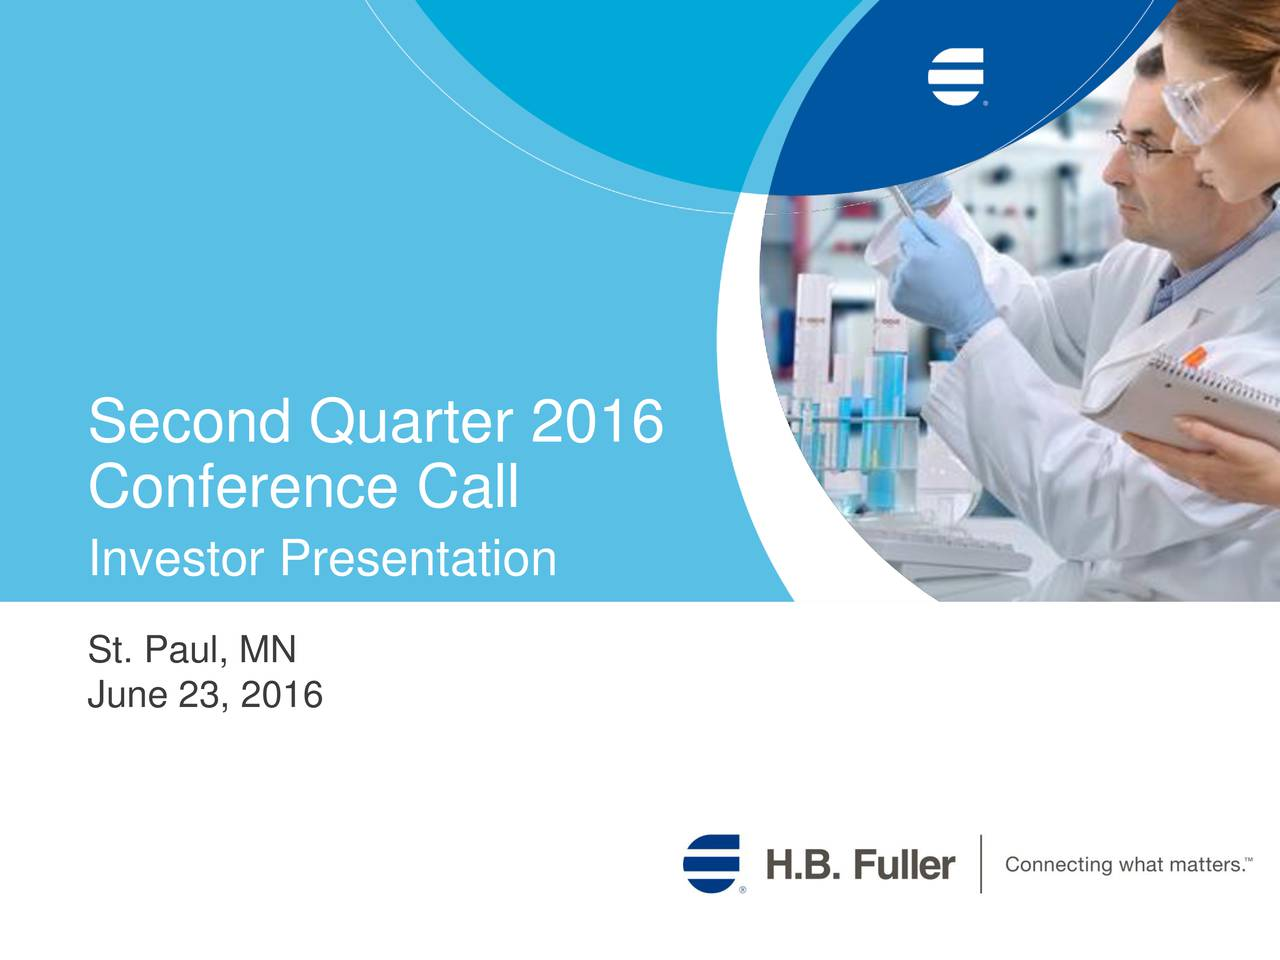 Conference Call Investor Presentation St. Paul, MN June 23, 2016